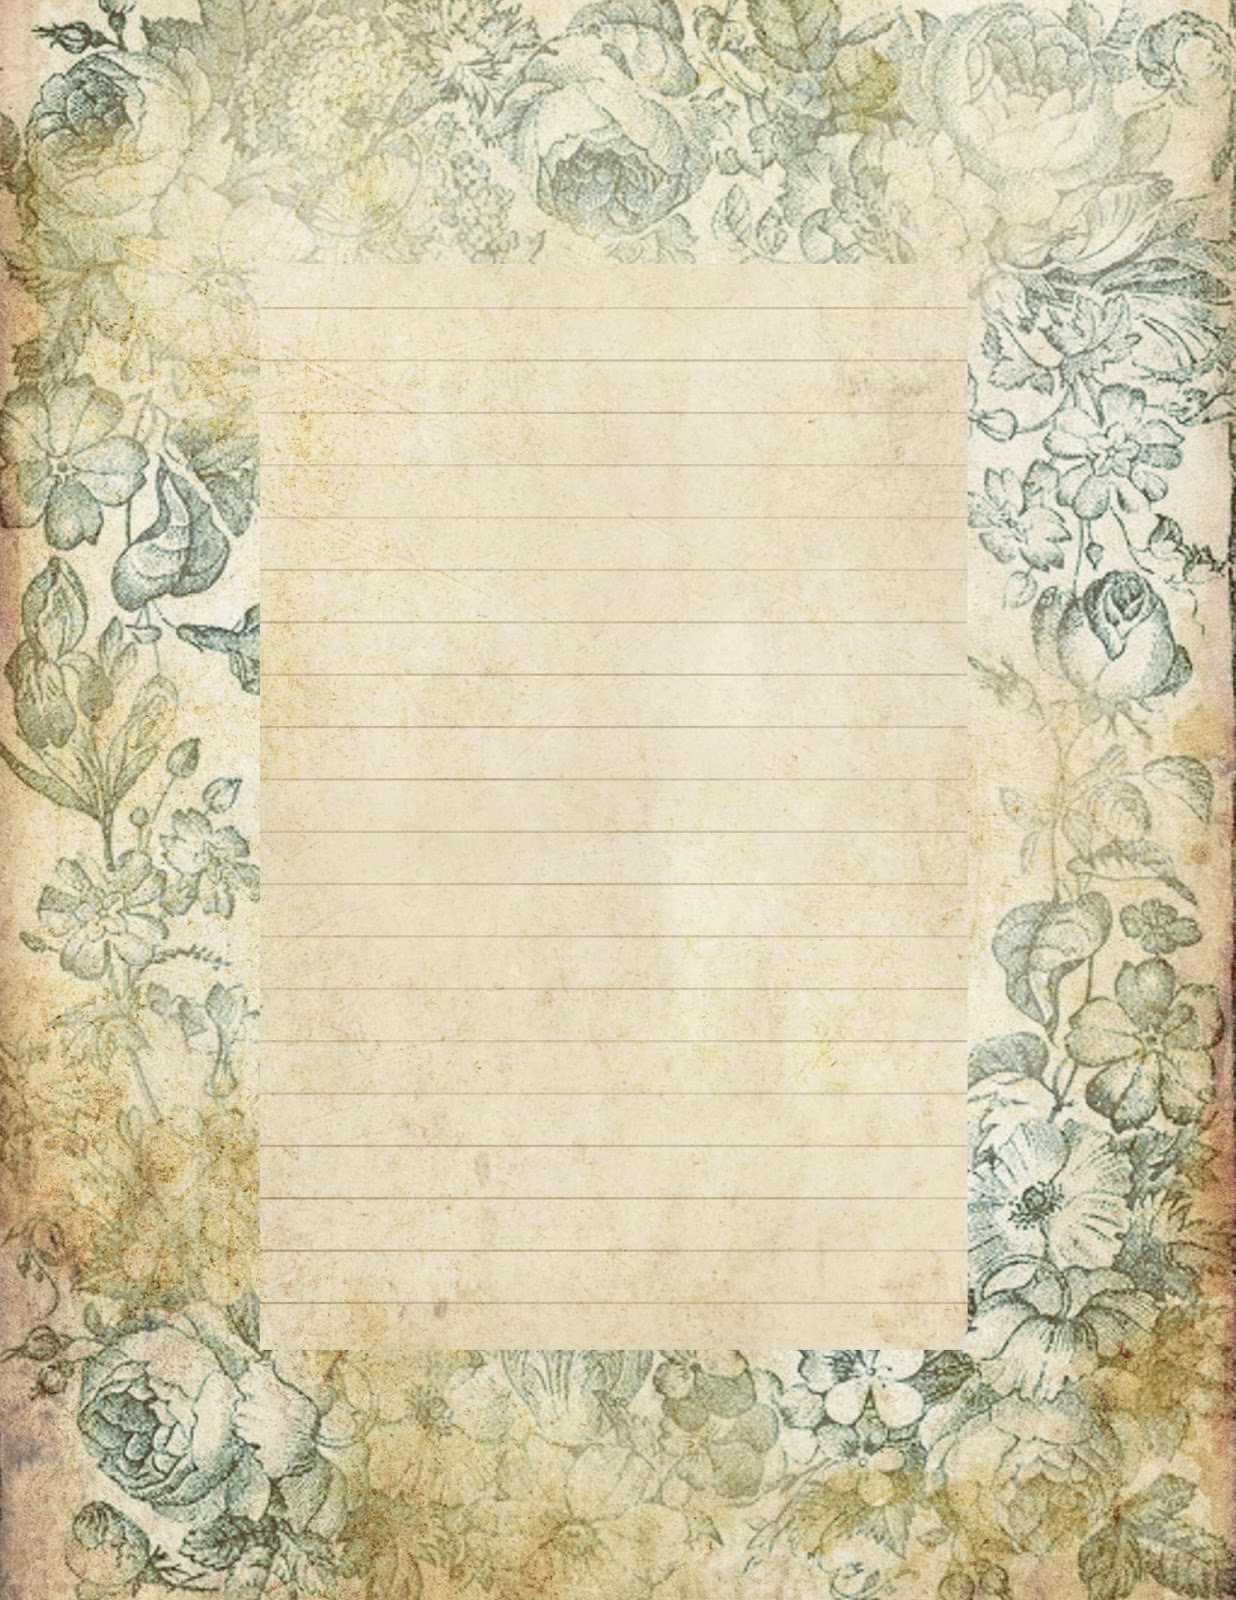 ... Lined Paper Template , Lined Notebook Paper , Notebook Paper